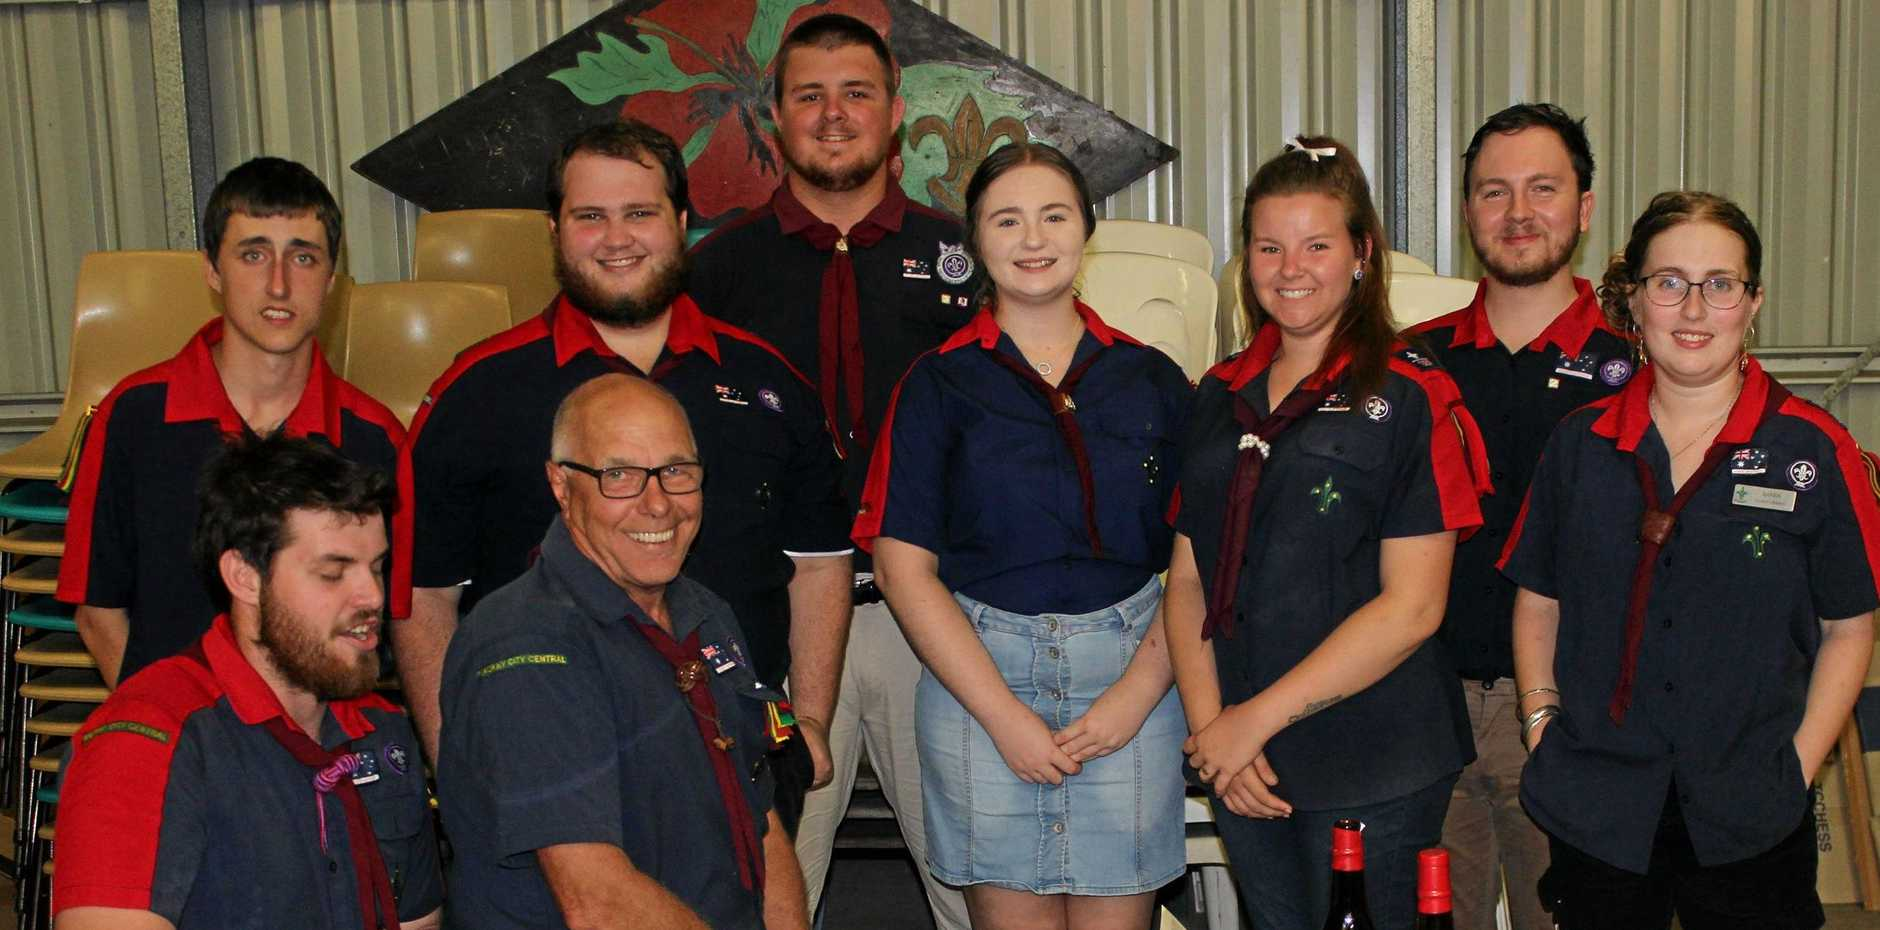 SPECIAL CEREMONY: Rover Scouts farewell their advisor Harry Rosestenburg (centre). From left, Conrad Lamb, Tristan Archibald, Tristan Gardner, Chelsea Cahill, Mel Whitestyles, Tim McIntyre and Ailsa Paterson Front Joshua Brzozowski and Harry Roestenburg.